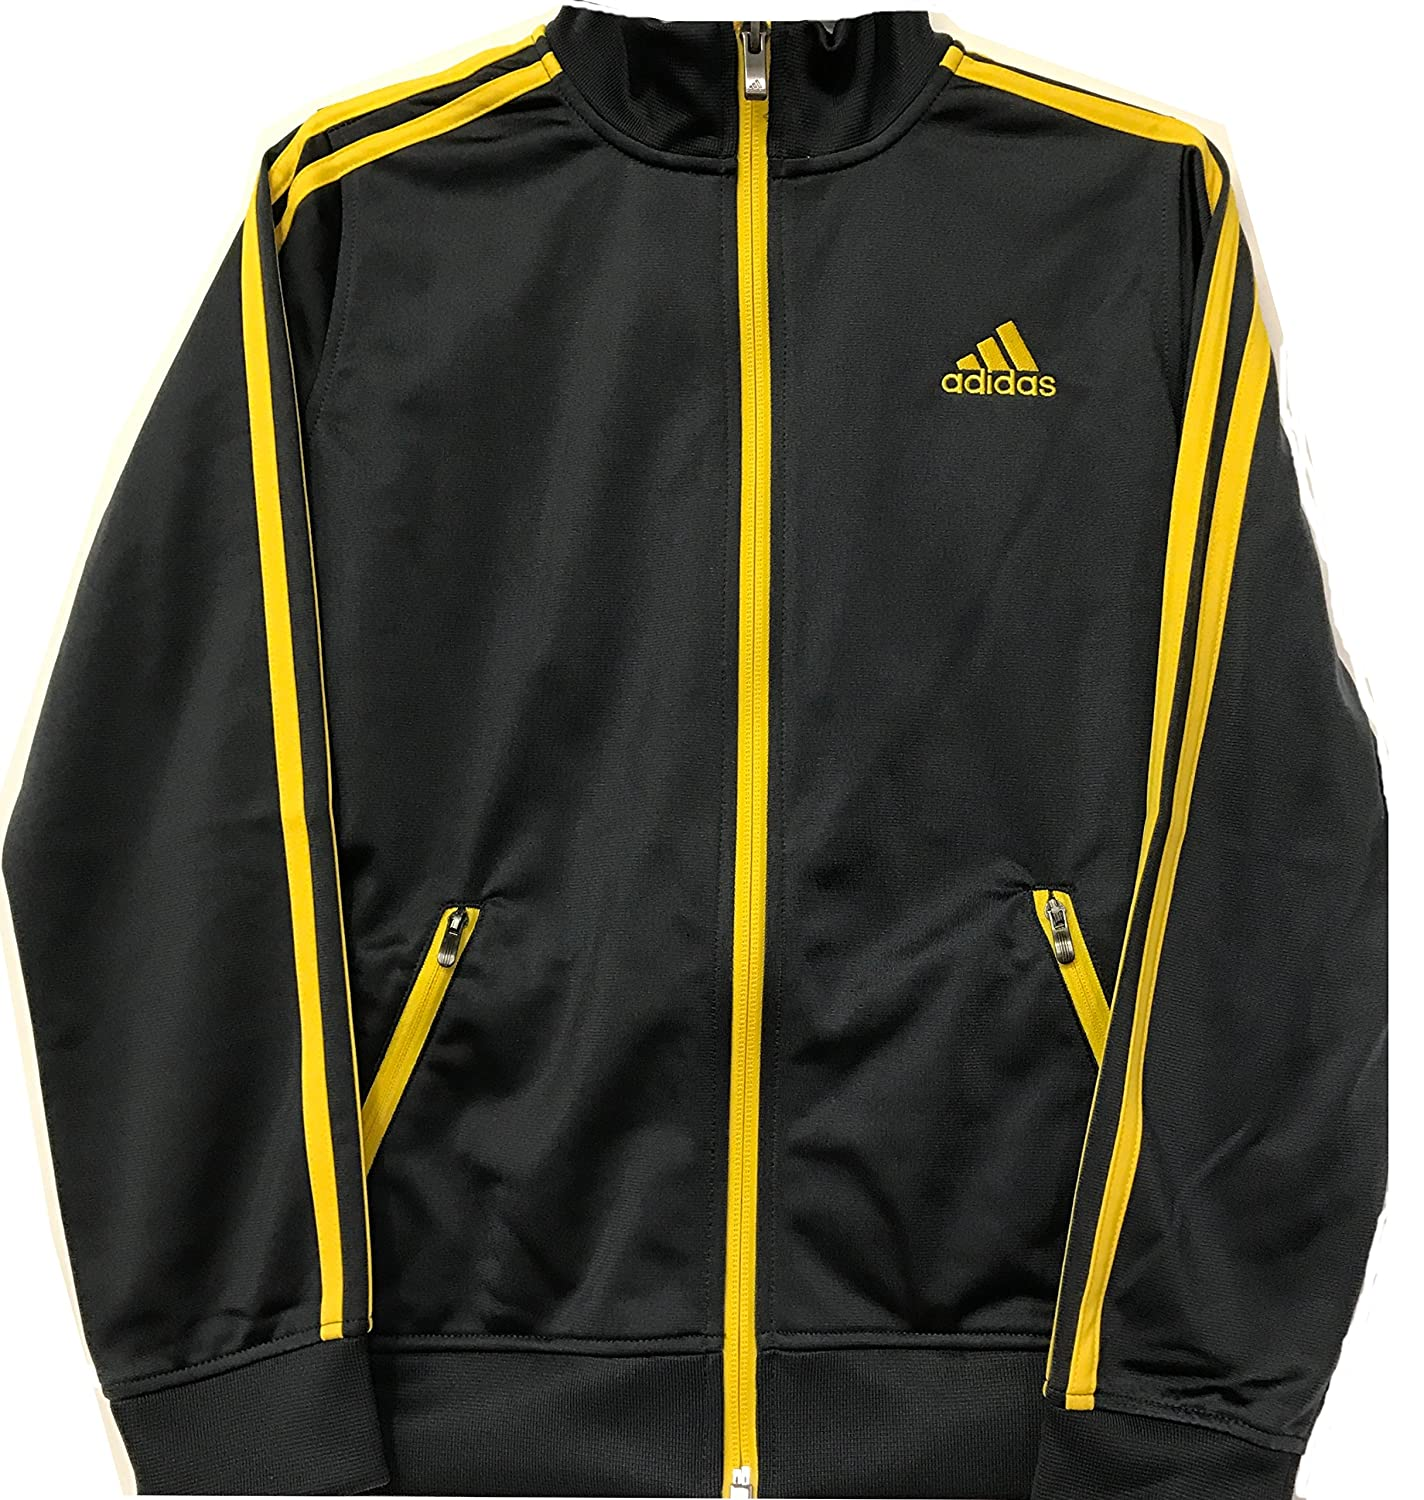 Adidas Back to Sports 3 Streifen Hooded Insulated